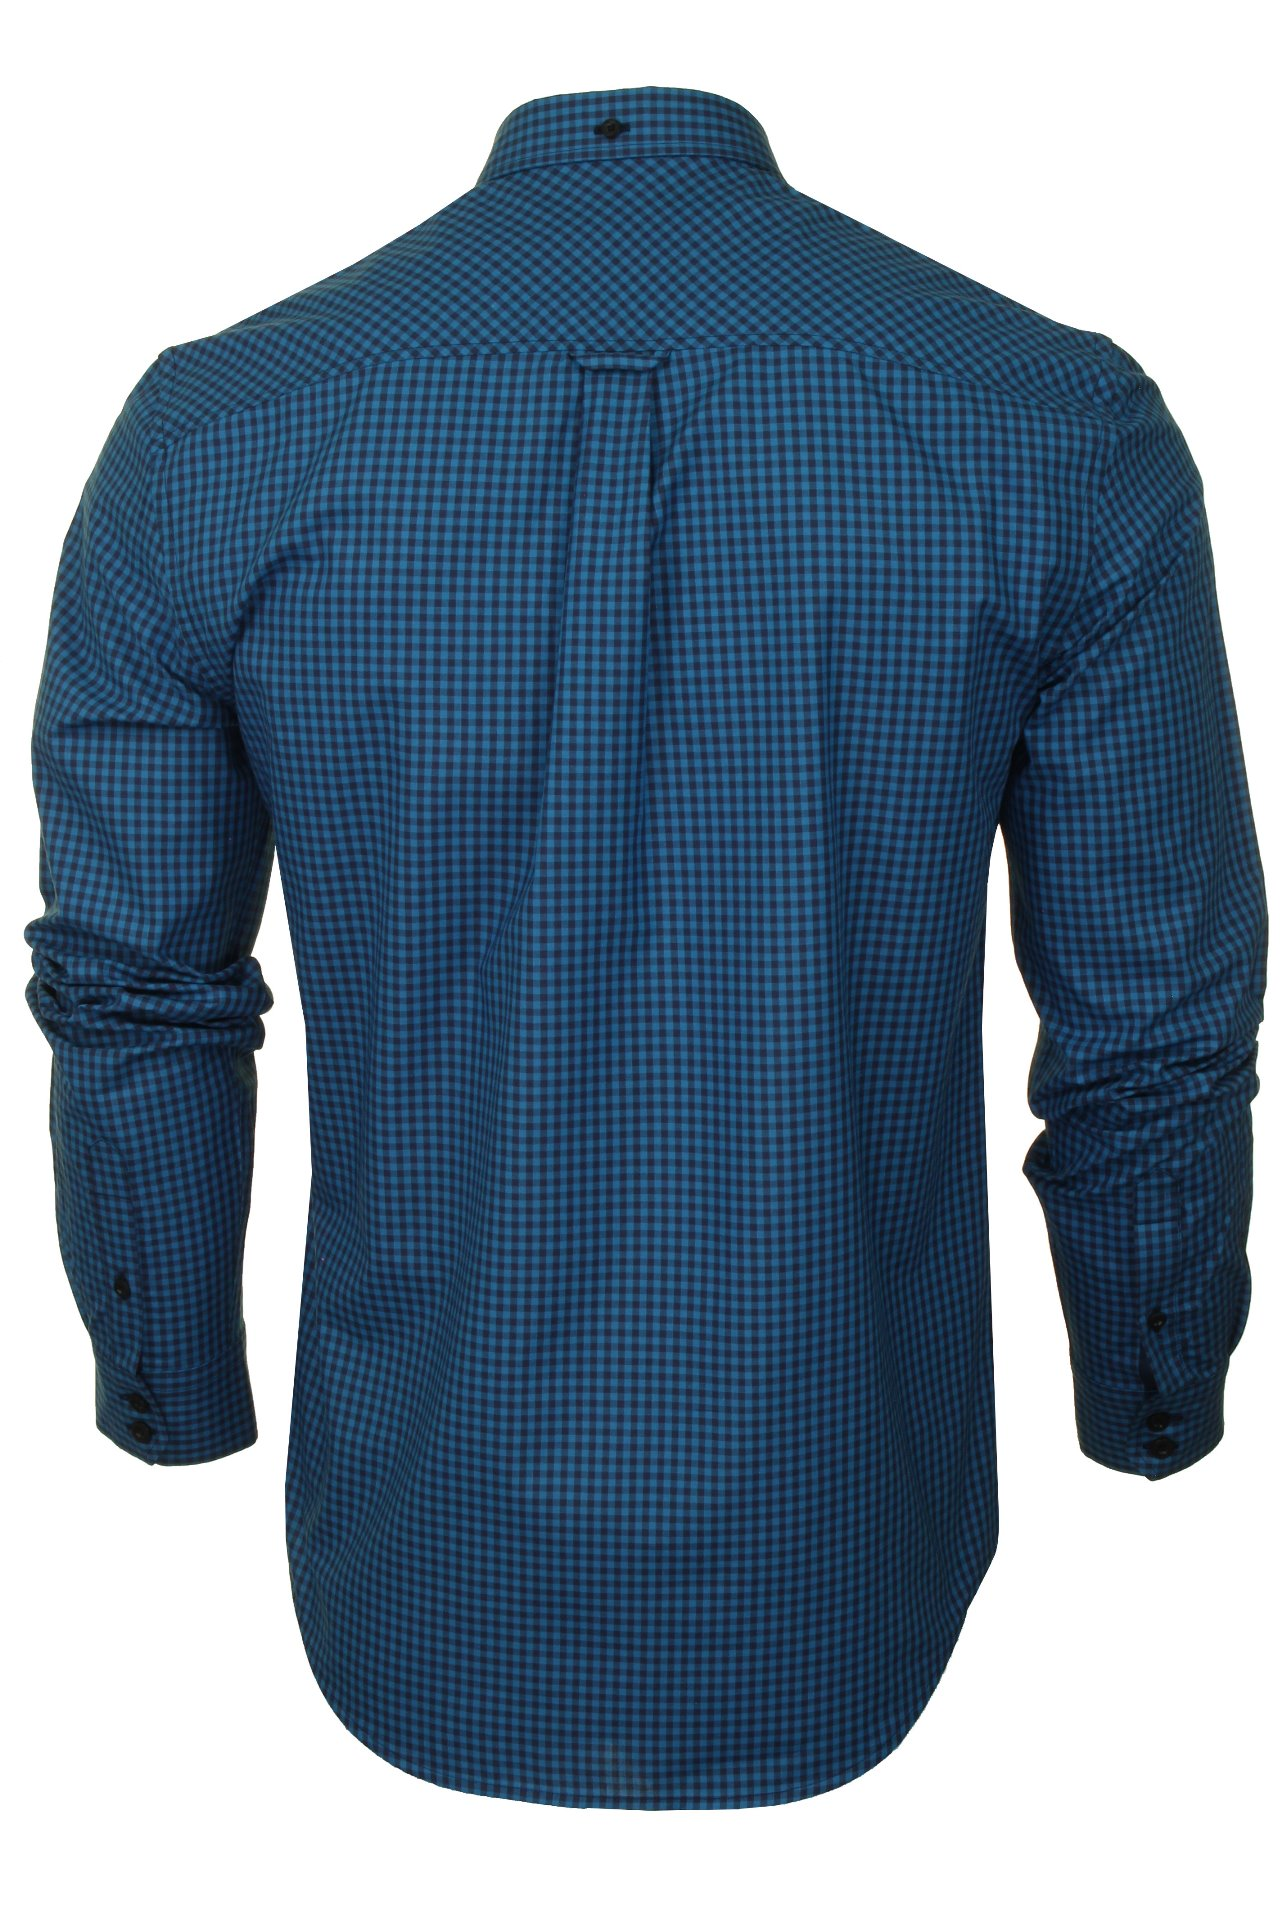 Ben-Sherman-Mens-Long-Sleeved-Gingham-Check-Shirt thumbnail 14